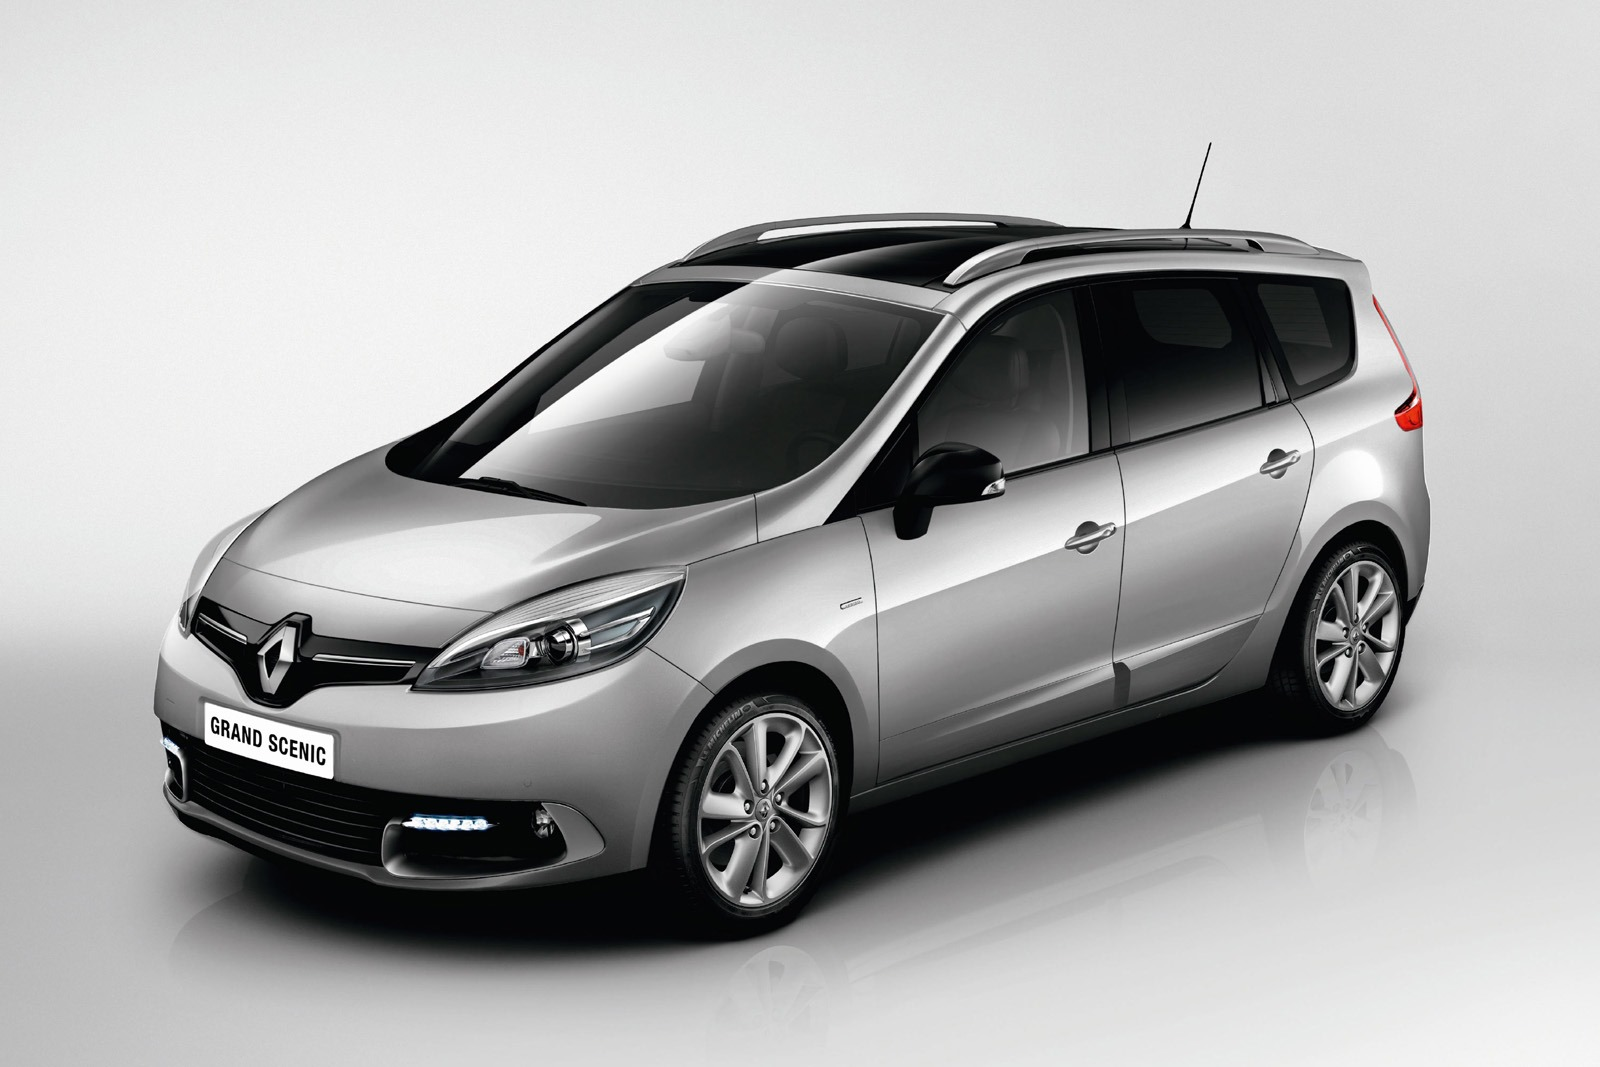 2014 renault scenic limited launched in uk autonews 1. Black Bedroom Furniture Sets. Home Design Ideas